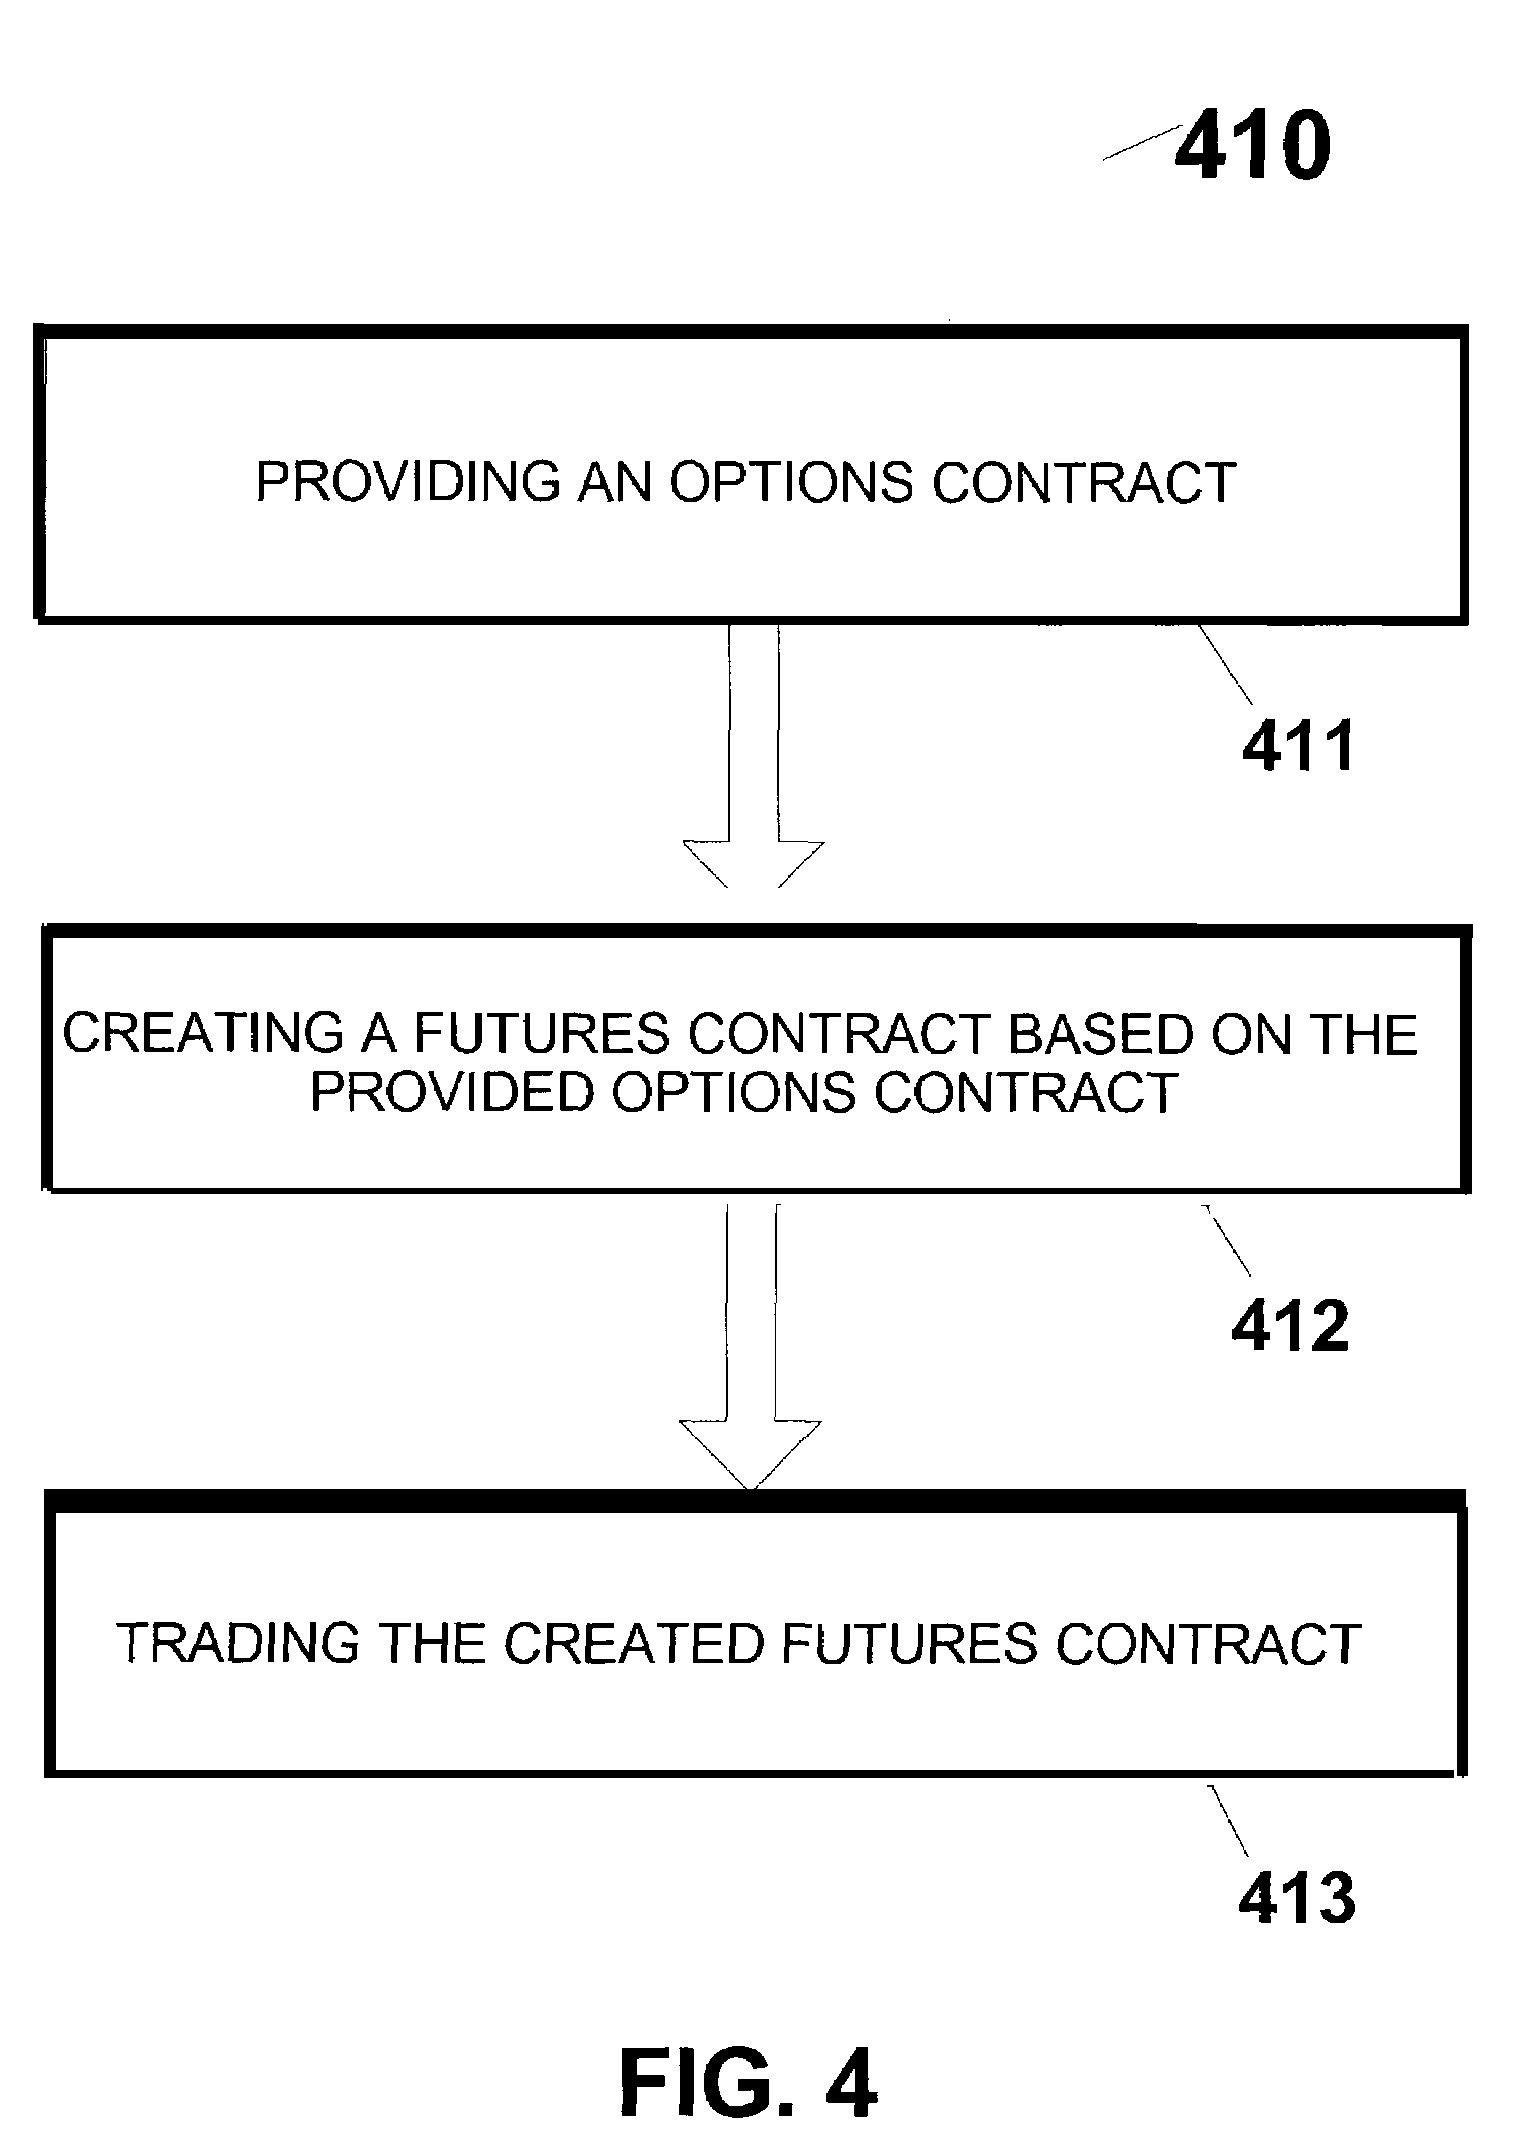 Where are options on futures traded